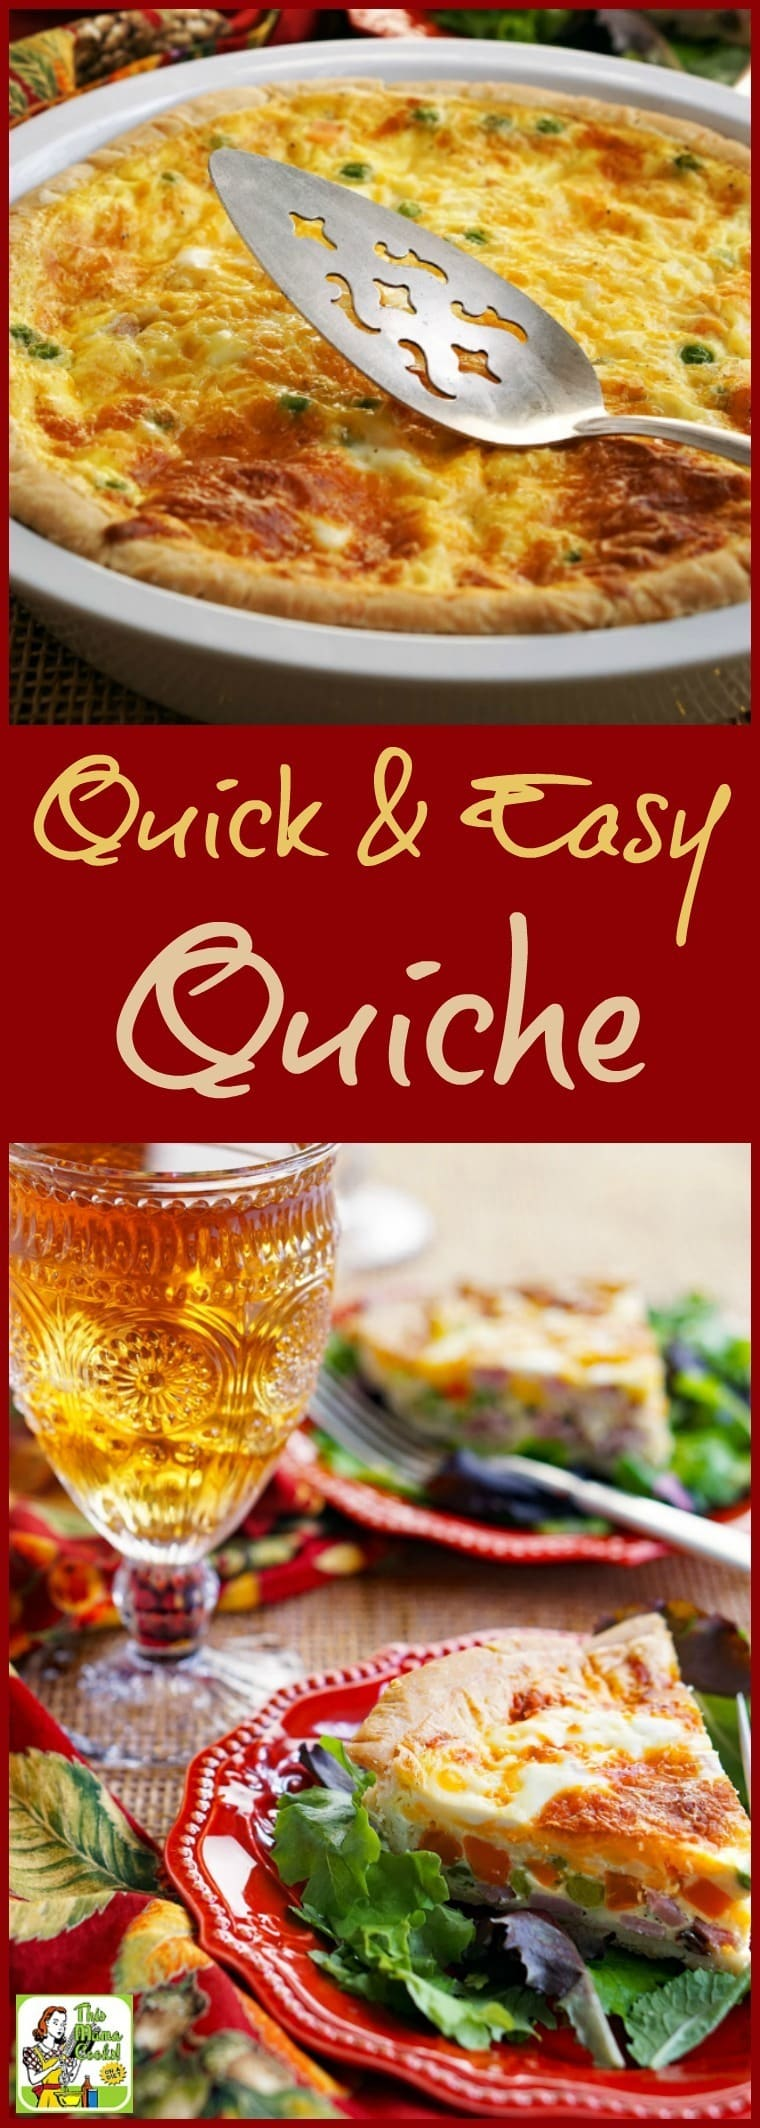 This Quick & Easy Quiche recipe can be made with leftovers or for parties. Click to get this easy dinner, brunch, breakfast or brinner recipe. Can be made vegetarian or gluten free.